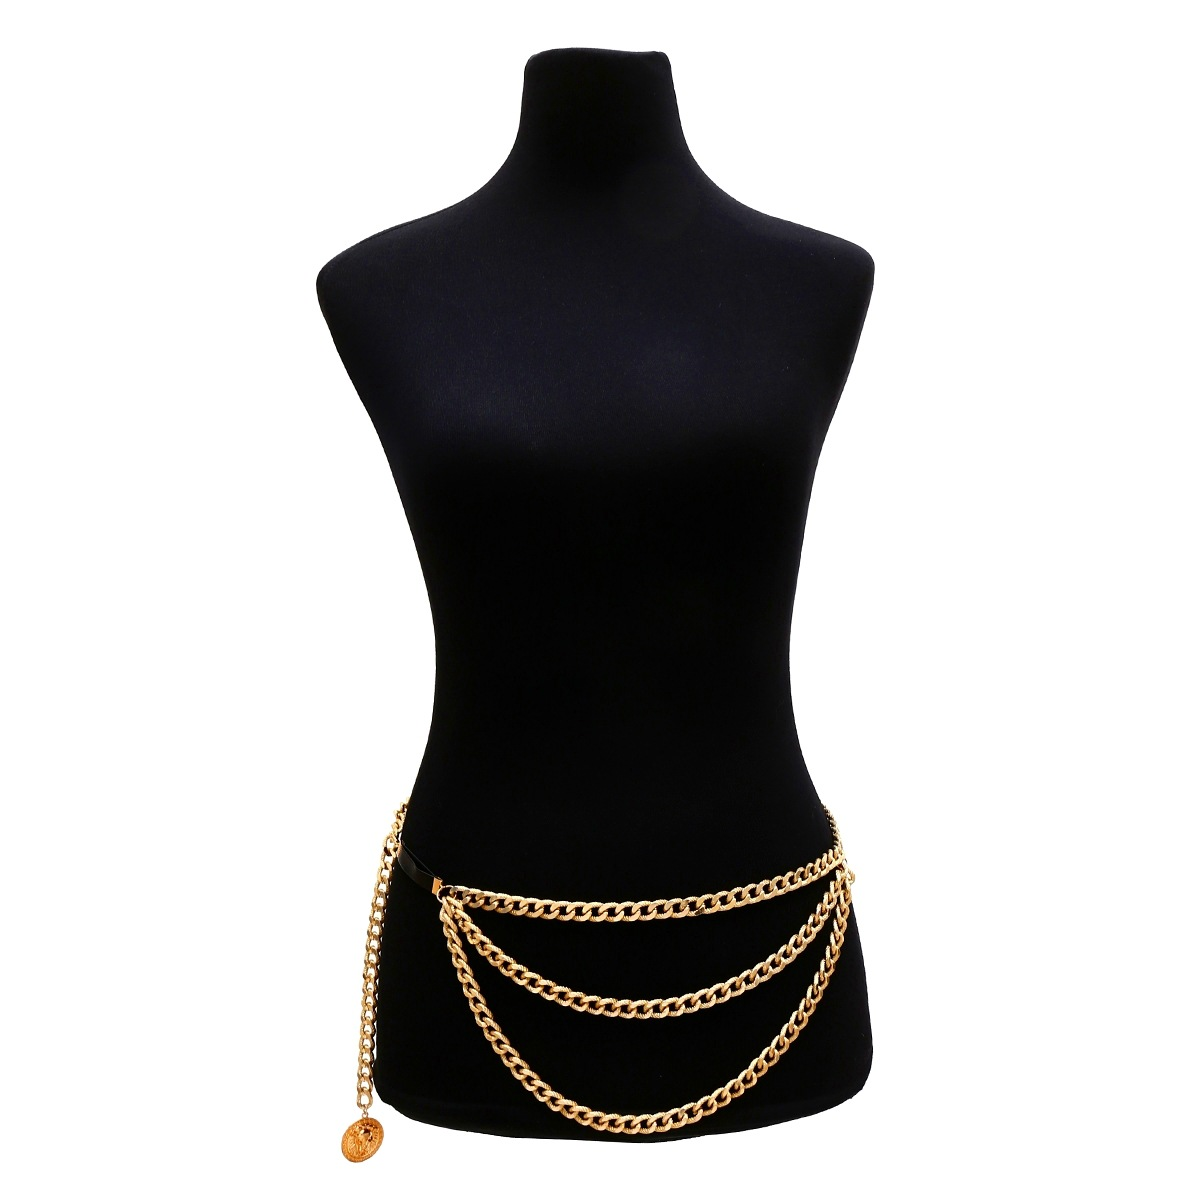 Alloy Simple Animal Body accessories  (Alloy 0402) NHXR2659-Alloy-0402